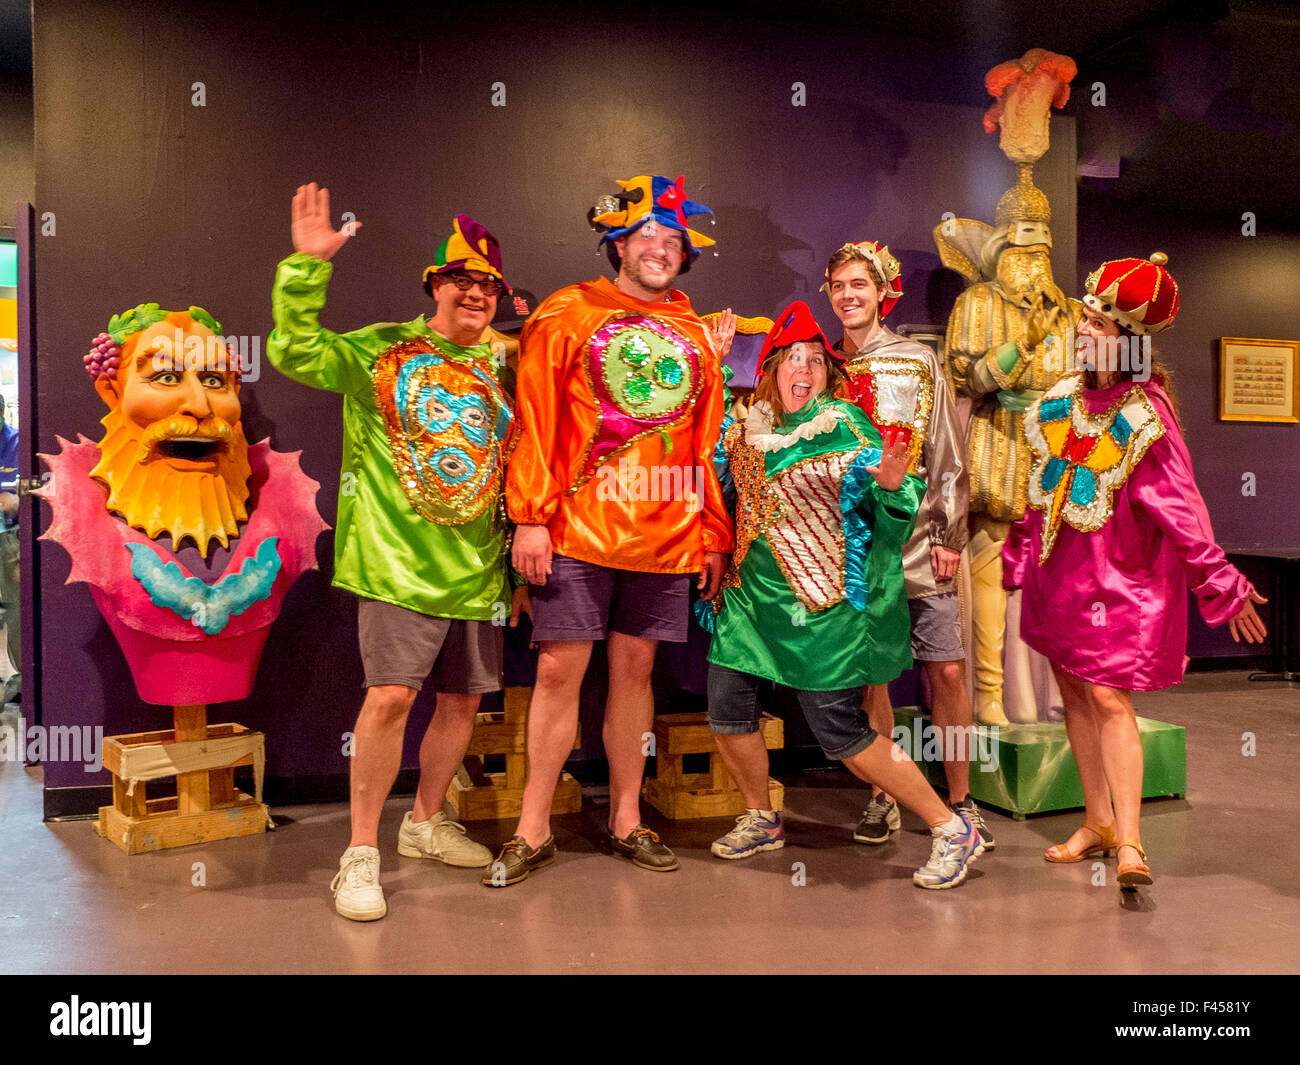 Tourists in fanciful garish costumes pose in New Orleans, LA, at Mardi Gras World, where parade floats are built. - Stock Image